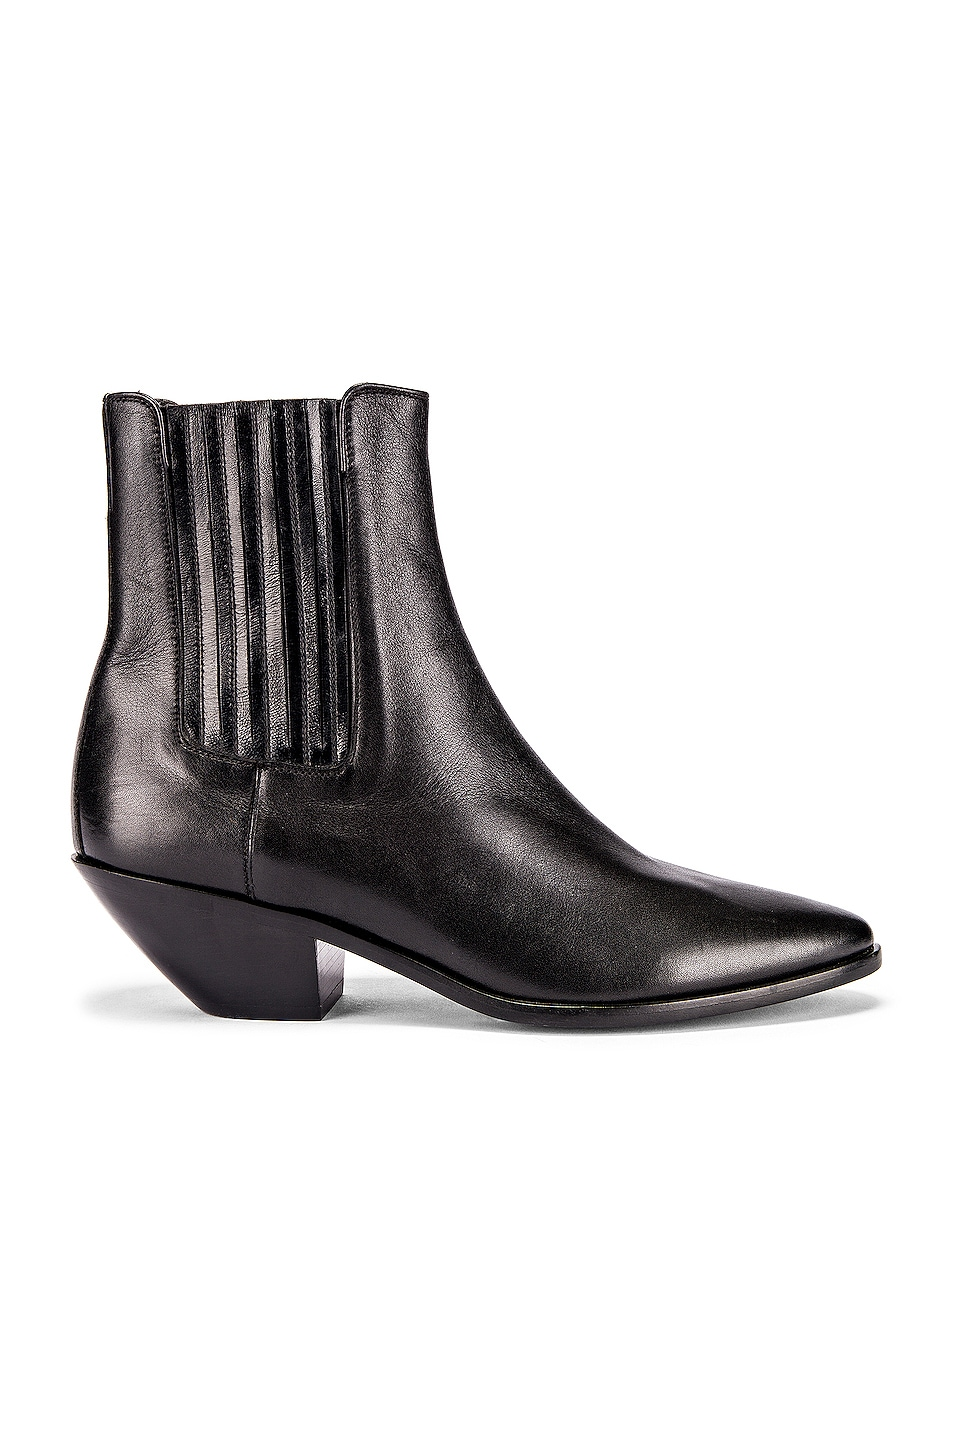 Image 1 of Saint Laurent West Chelsea Boots in Black